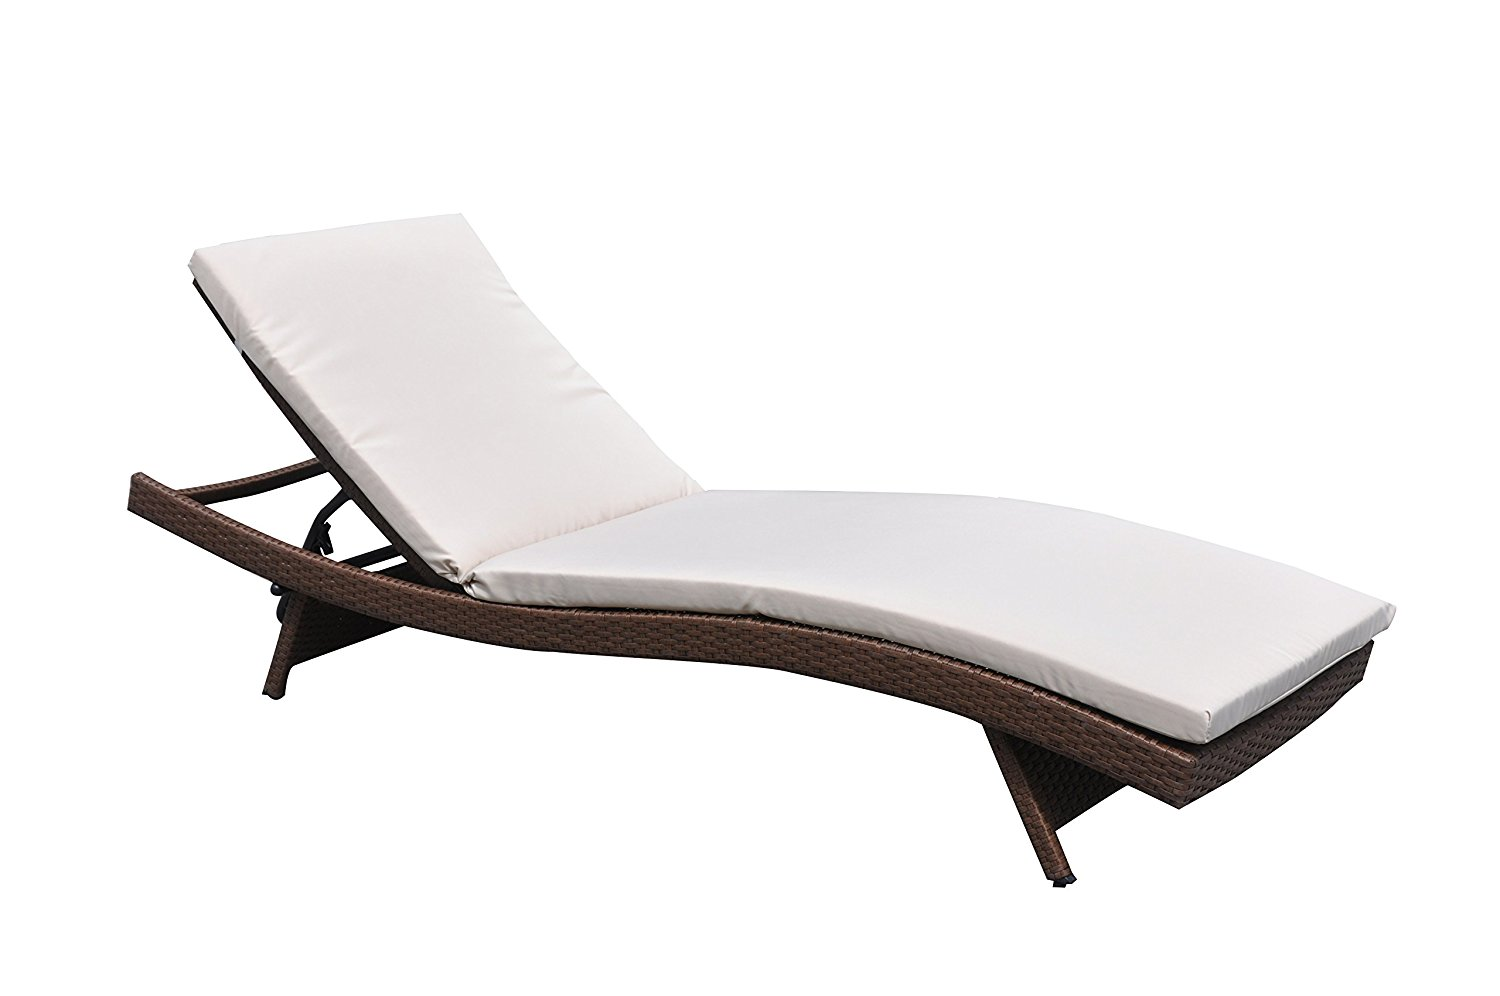 Outdoor Paito Recliner PE Wicker Adjustable Pool Chaise Lounge Chair Clearanc